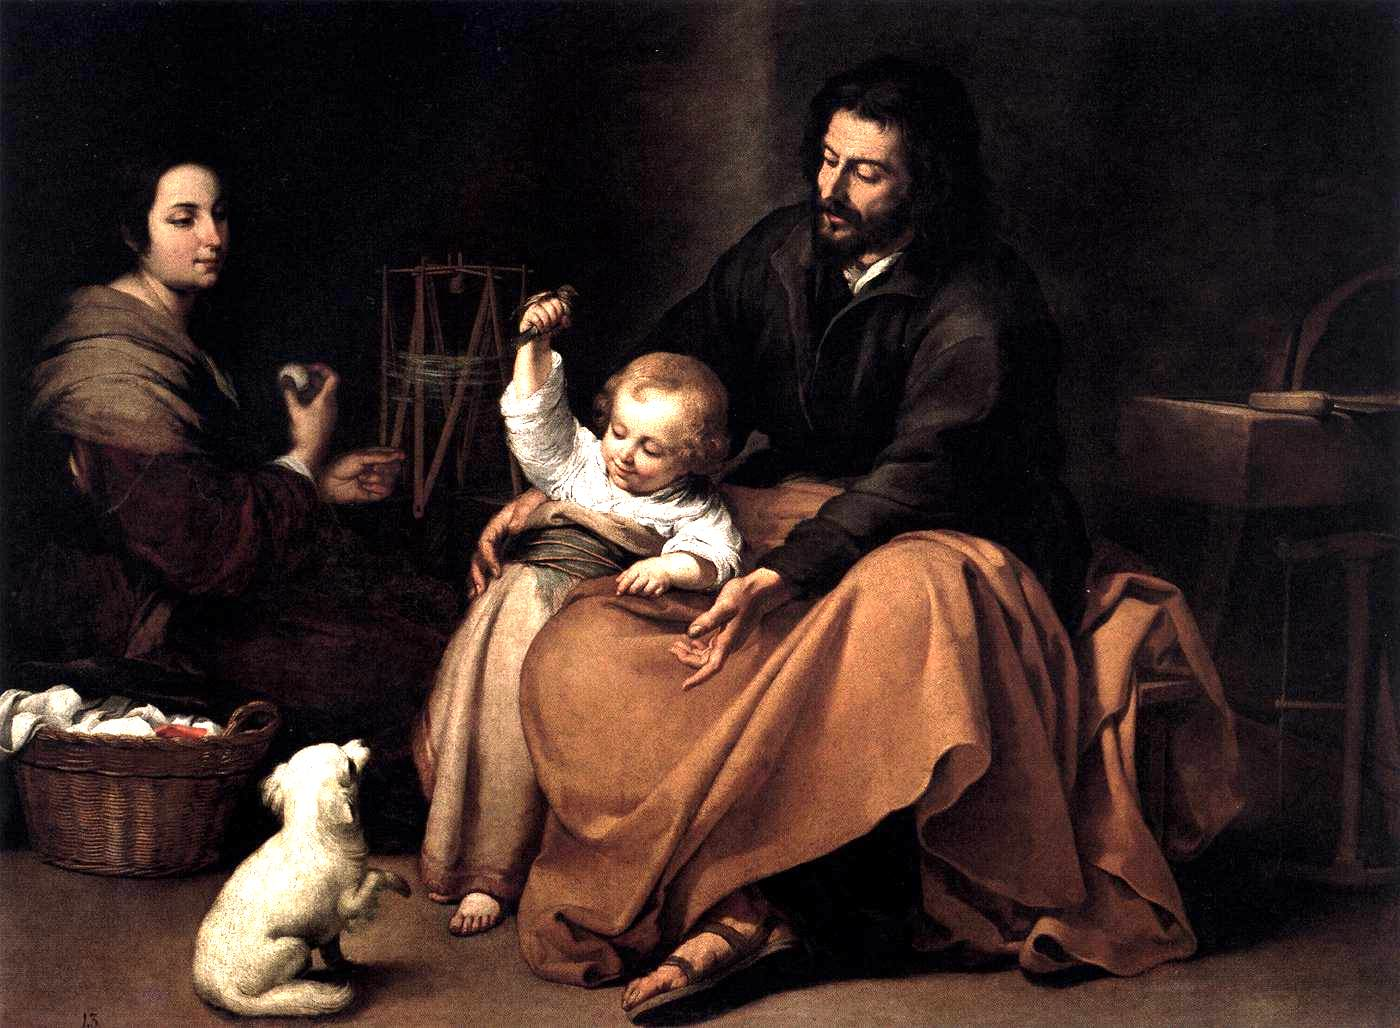 http://uploads5.wikipaintings.org/images/bartolome-esteban-murillo/the-holy-family-with-the-little-bird.jpg